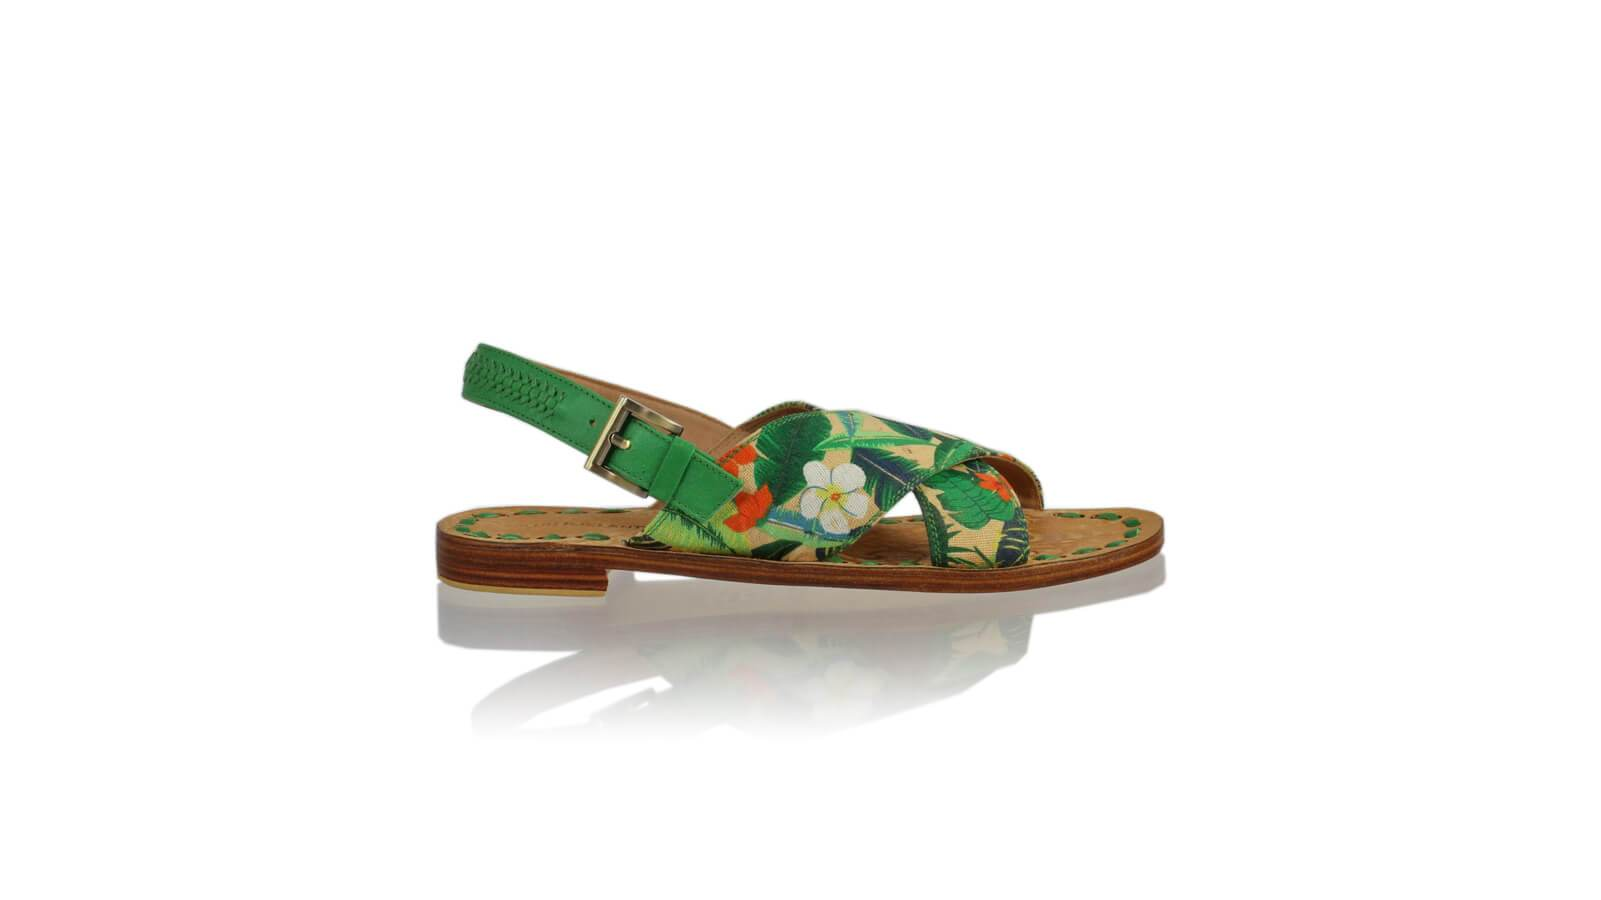 Leather-shoes-Ines Strap 20mm Flat - Green & Multicolor Forest-sandals flat-NILUH DJELANTIK-NILUH DJELANTIK